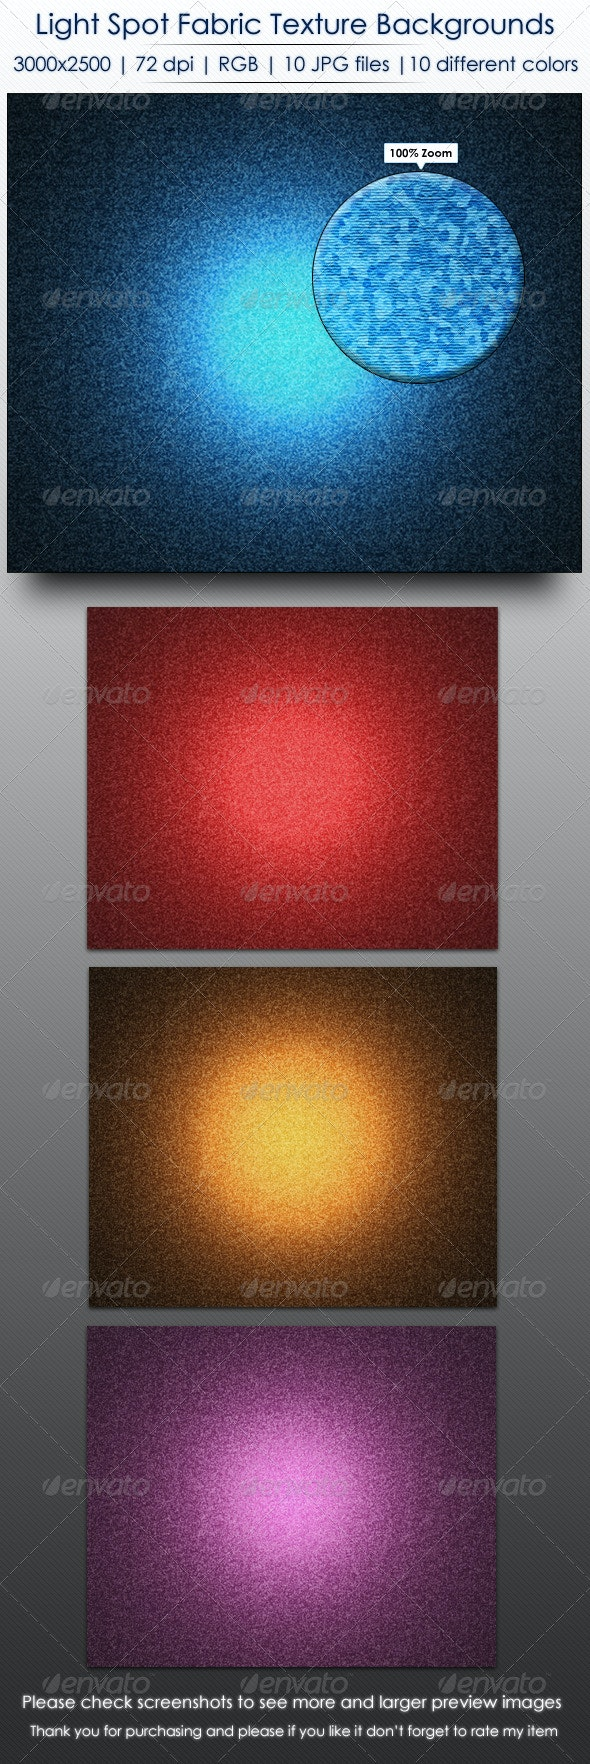 Light Spot Fabric Texture Backgrounds - Abstract Backgrounds